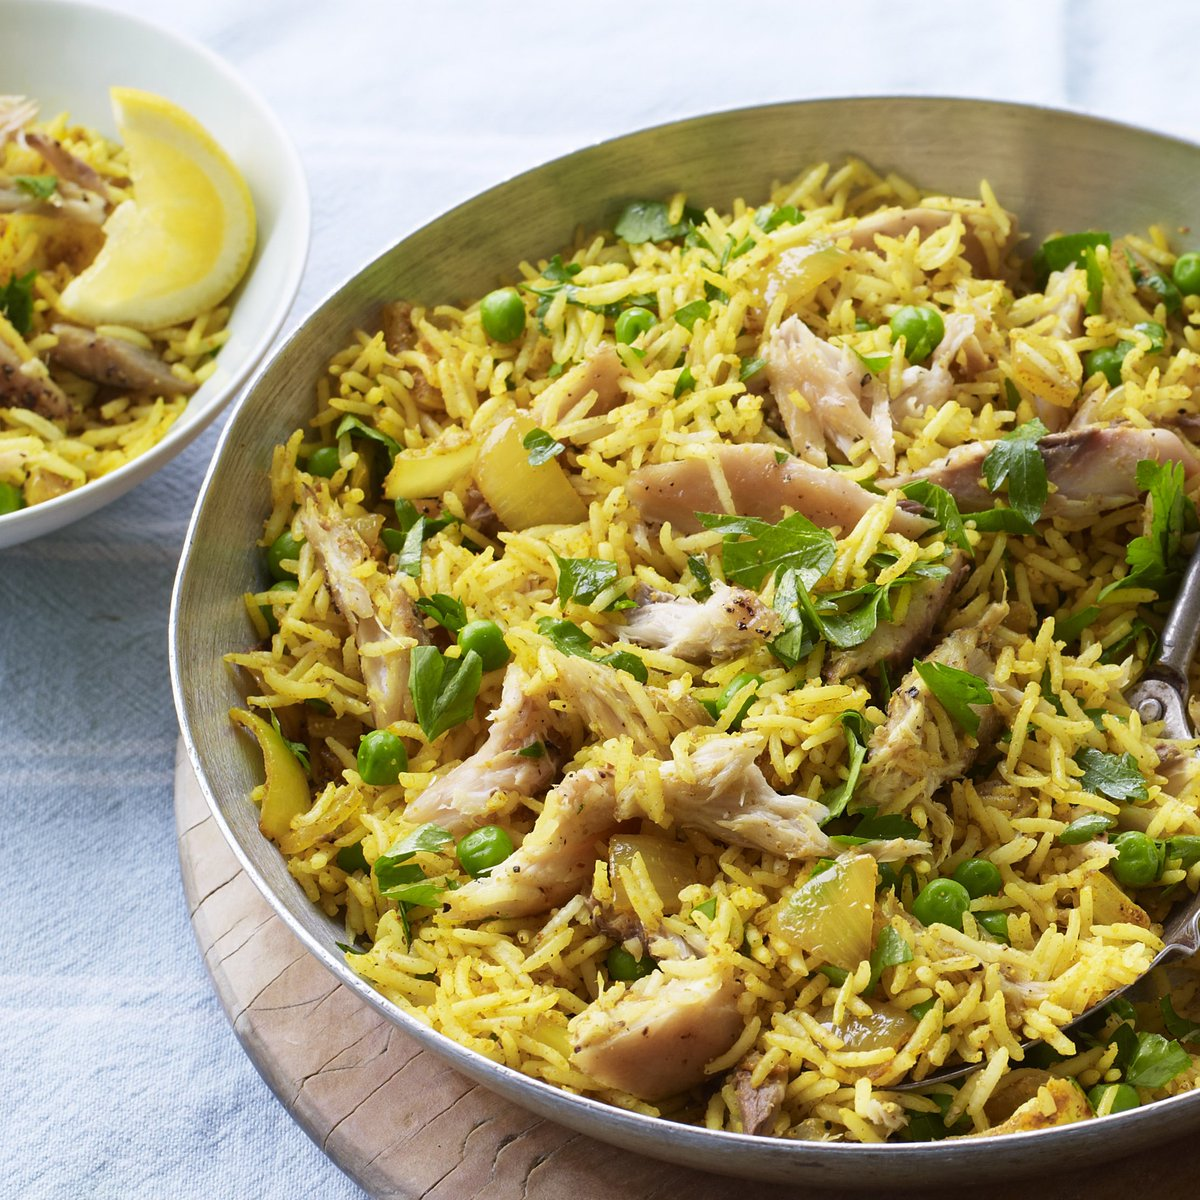 A great one-pan meal that's healthy, cheap and tastes pretty darn good https://www.bbc.com/food/recipes/smoked_mackerel_pilau_66783…